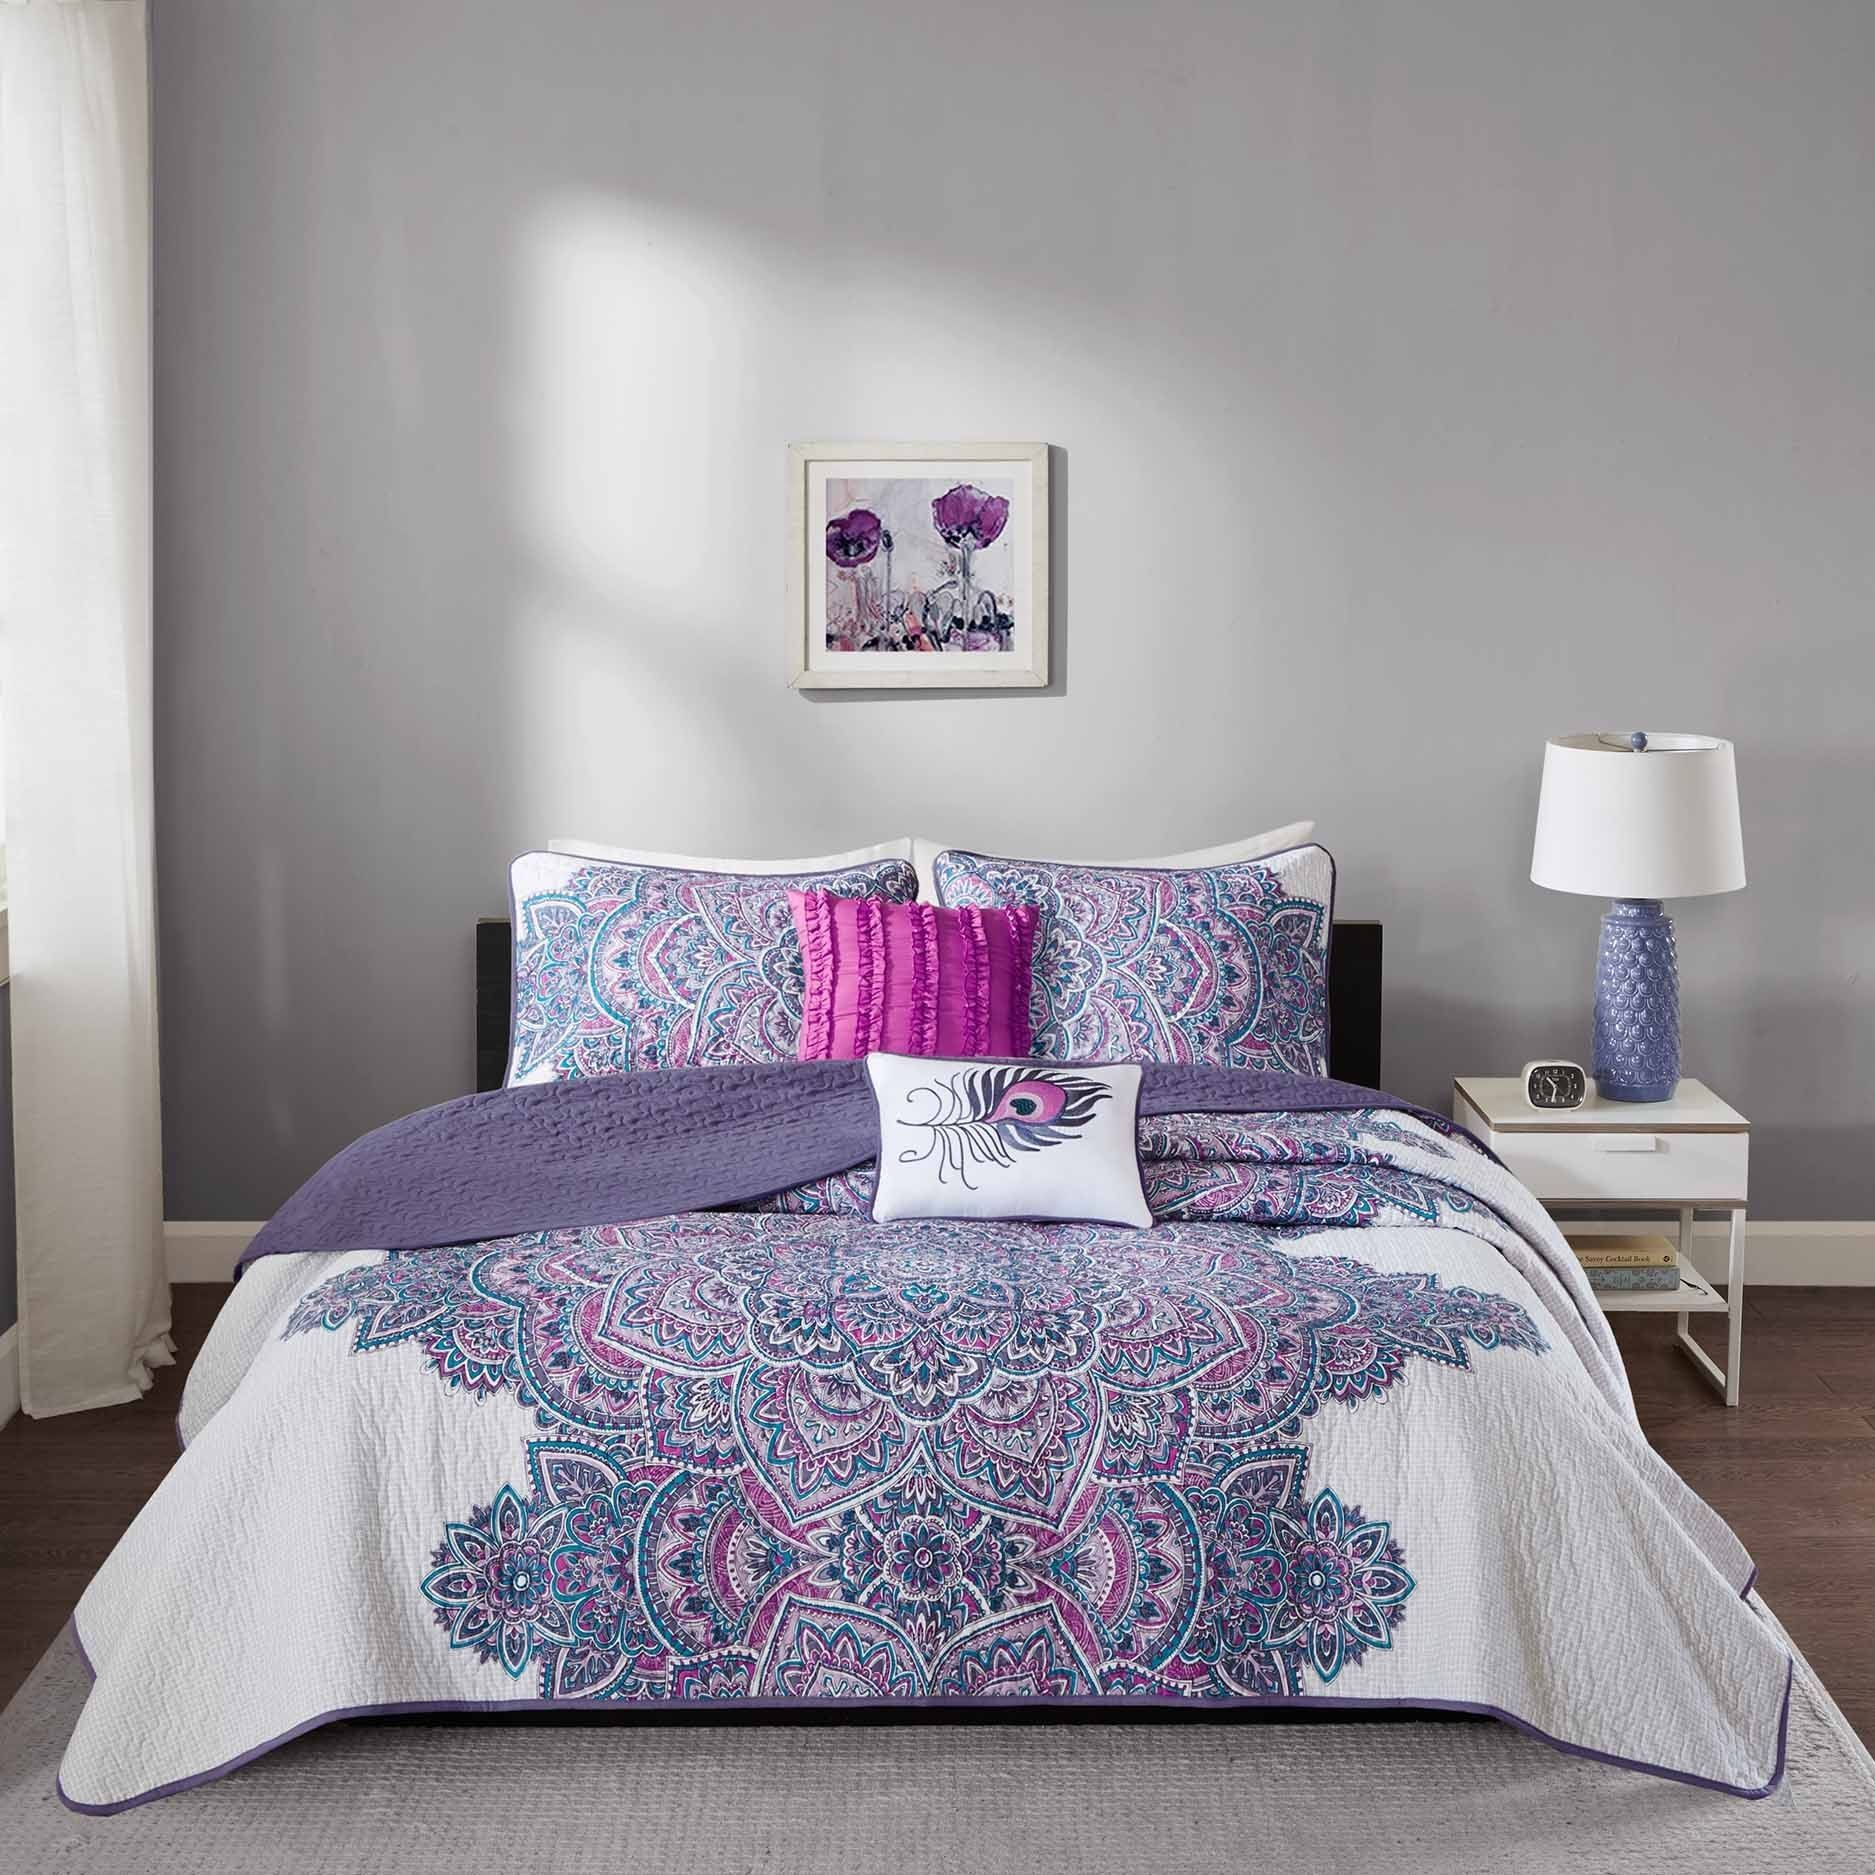 Room PurpleRed Comforter Sets PurpleRed